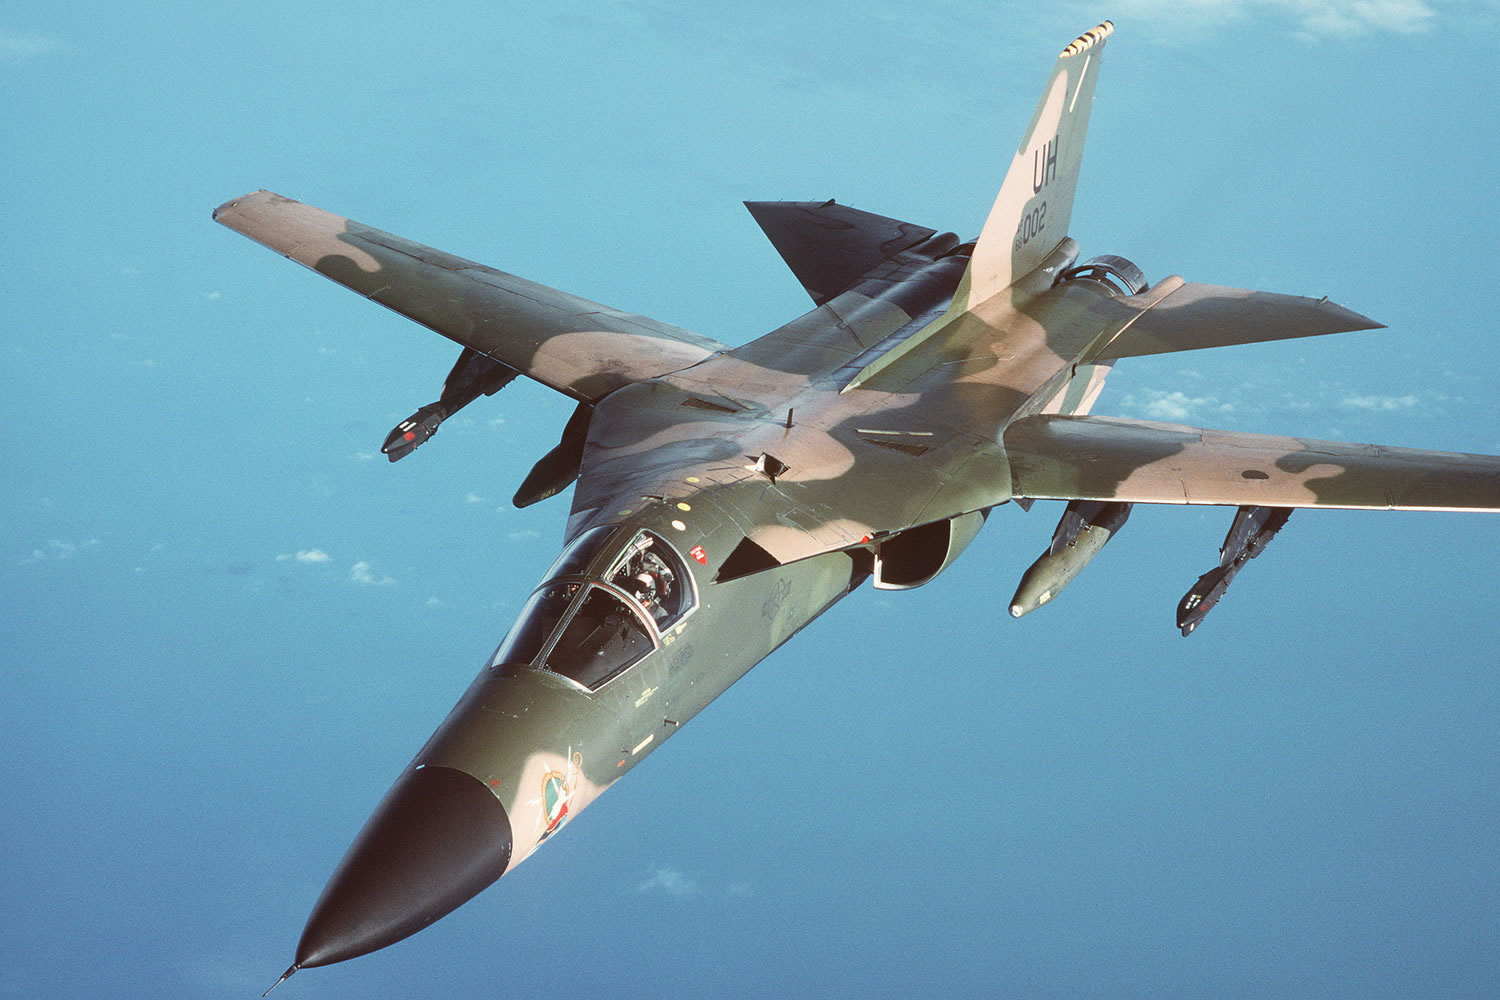 The F-111 Fighter Bomber